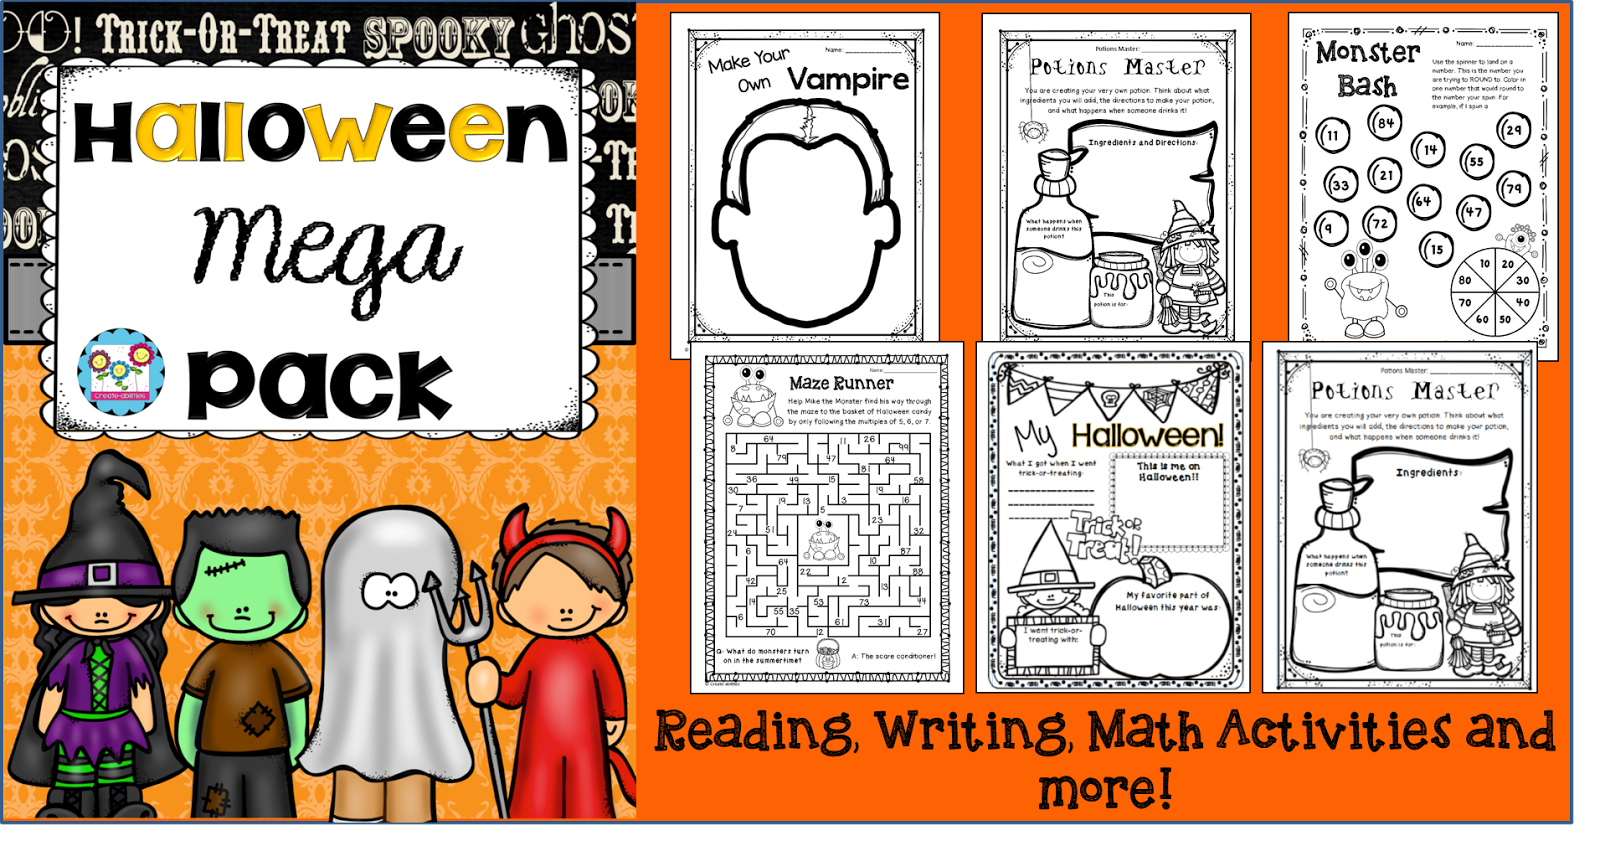 http://www.teacherspayteachers.com/Product/Halloween-Mega-Pack-Reading-Comprehension-Writing-and-Math-Activities-904319